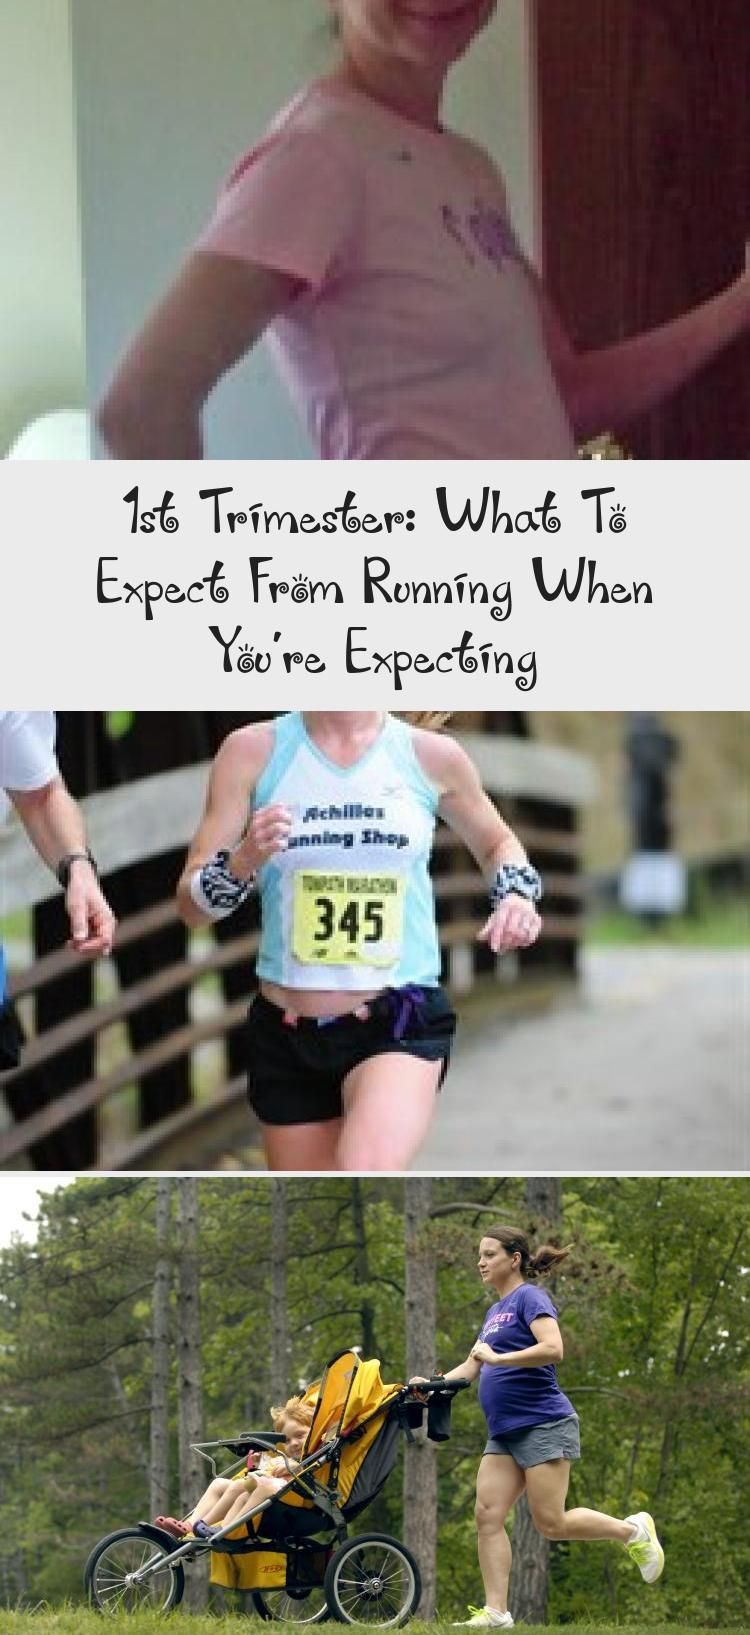 1st trimester what you can expect from running when you expect it  salty running pregnancy1sttrimesterFitness pregnancy1sttrimesterSigns